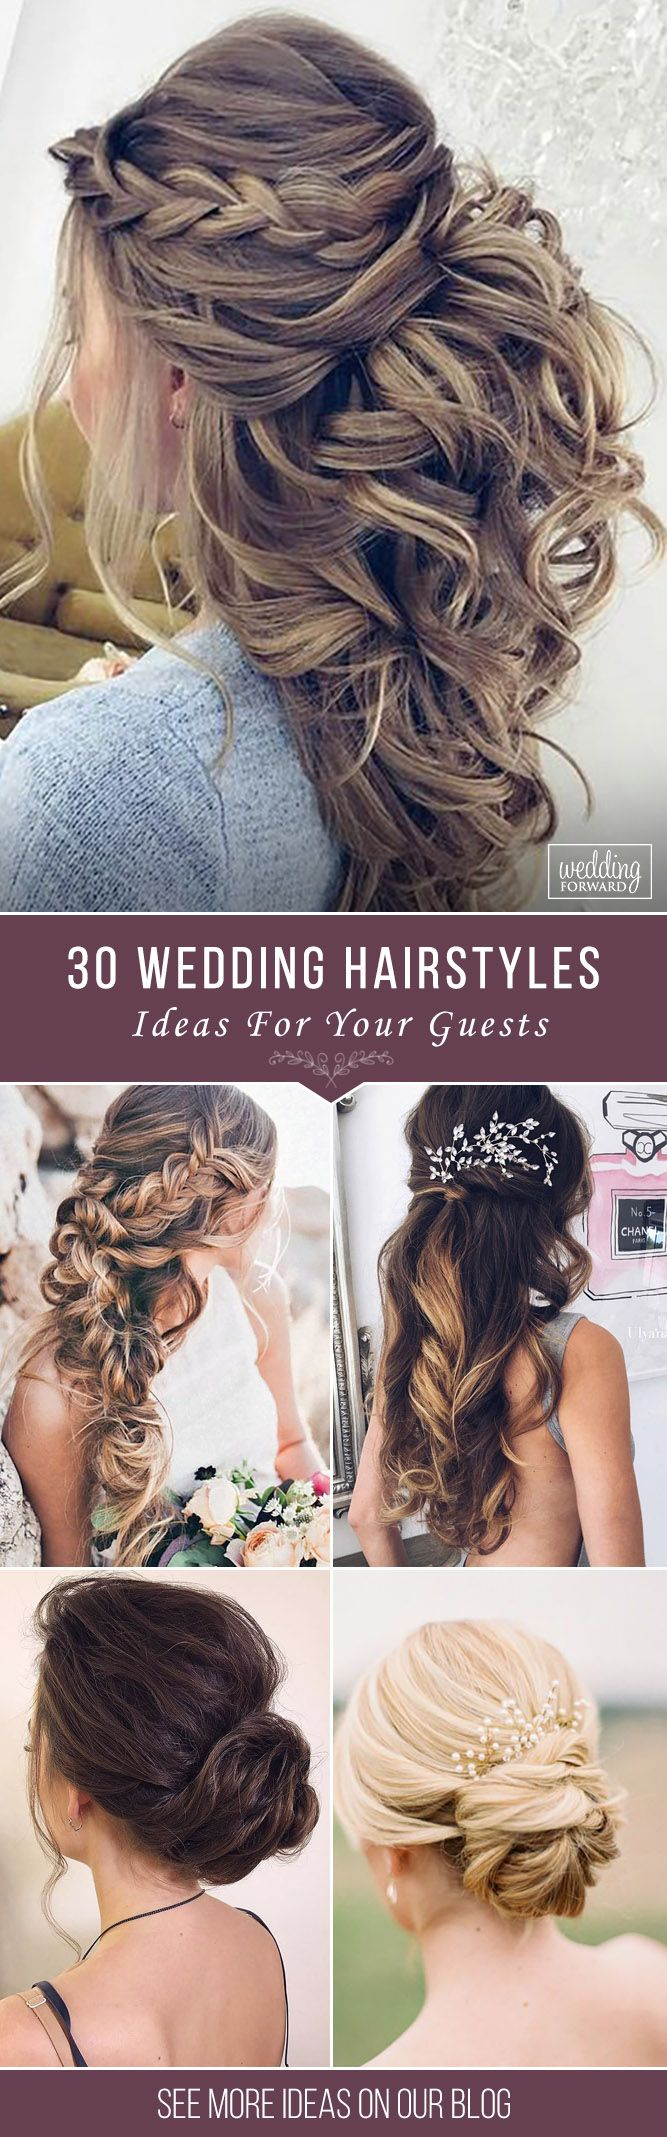 30 Chic And Easy Wedding Guest Hairstyles ❤ Wedding guest hairstyles should be fancy, rather effortless than very difficult. In our gallery we have something any female guest would want for sure! See more: http://www.weddingforward.com/wedding-guest-hairstyles/ ‎#wedding #weddingguesthairstyles